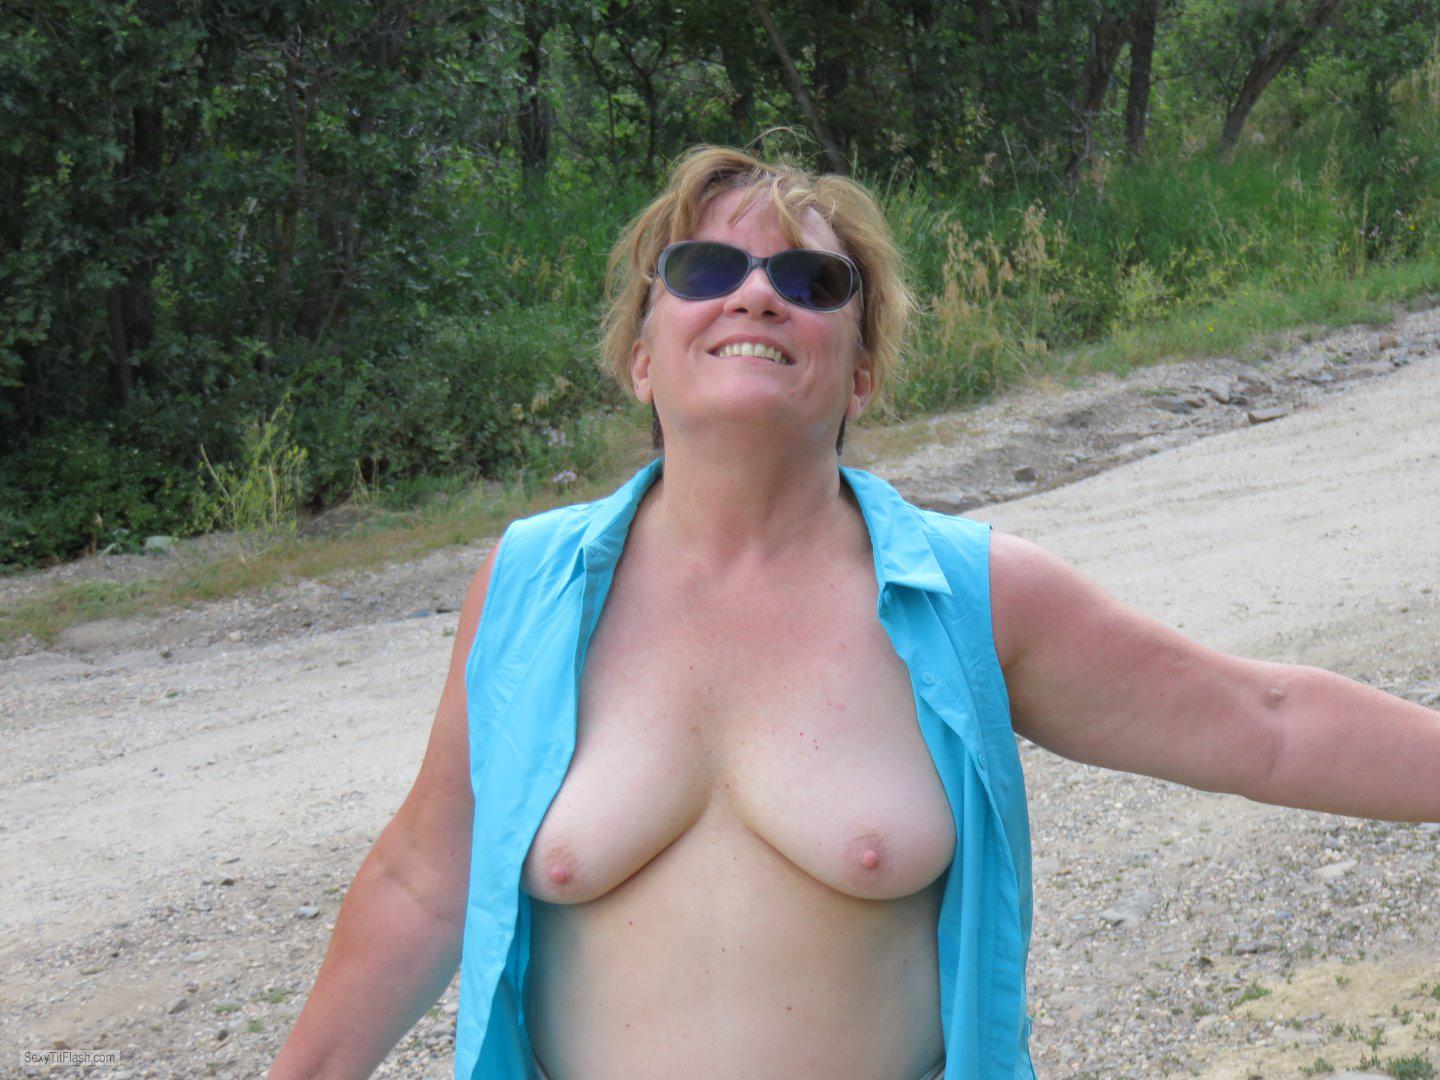 Tit Flash: My Small Tits - Karenkri from United States